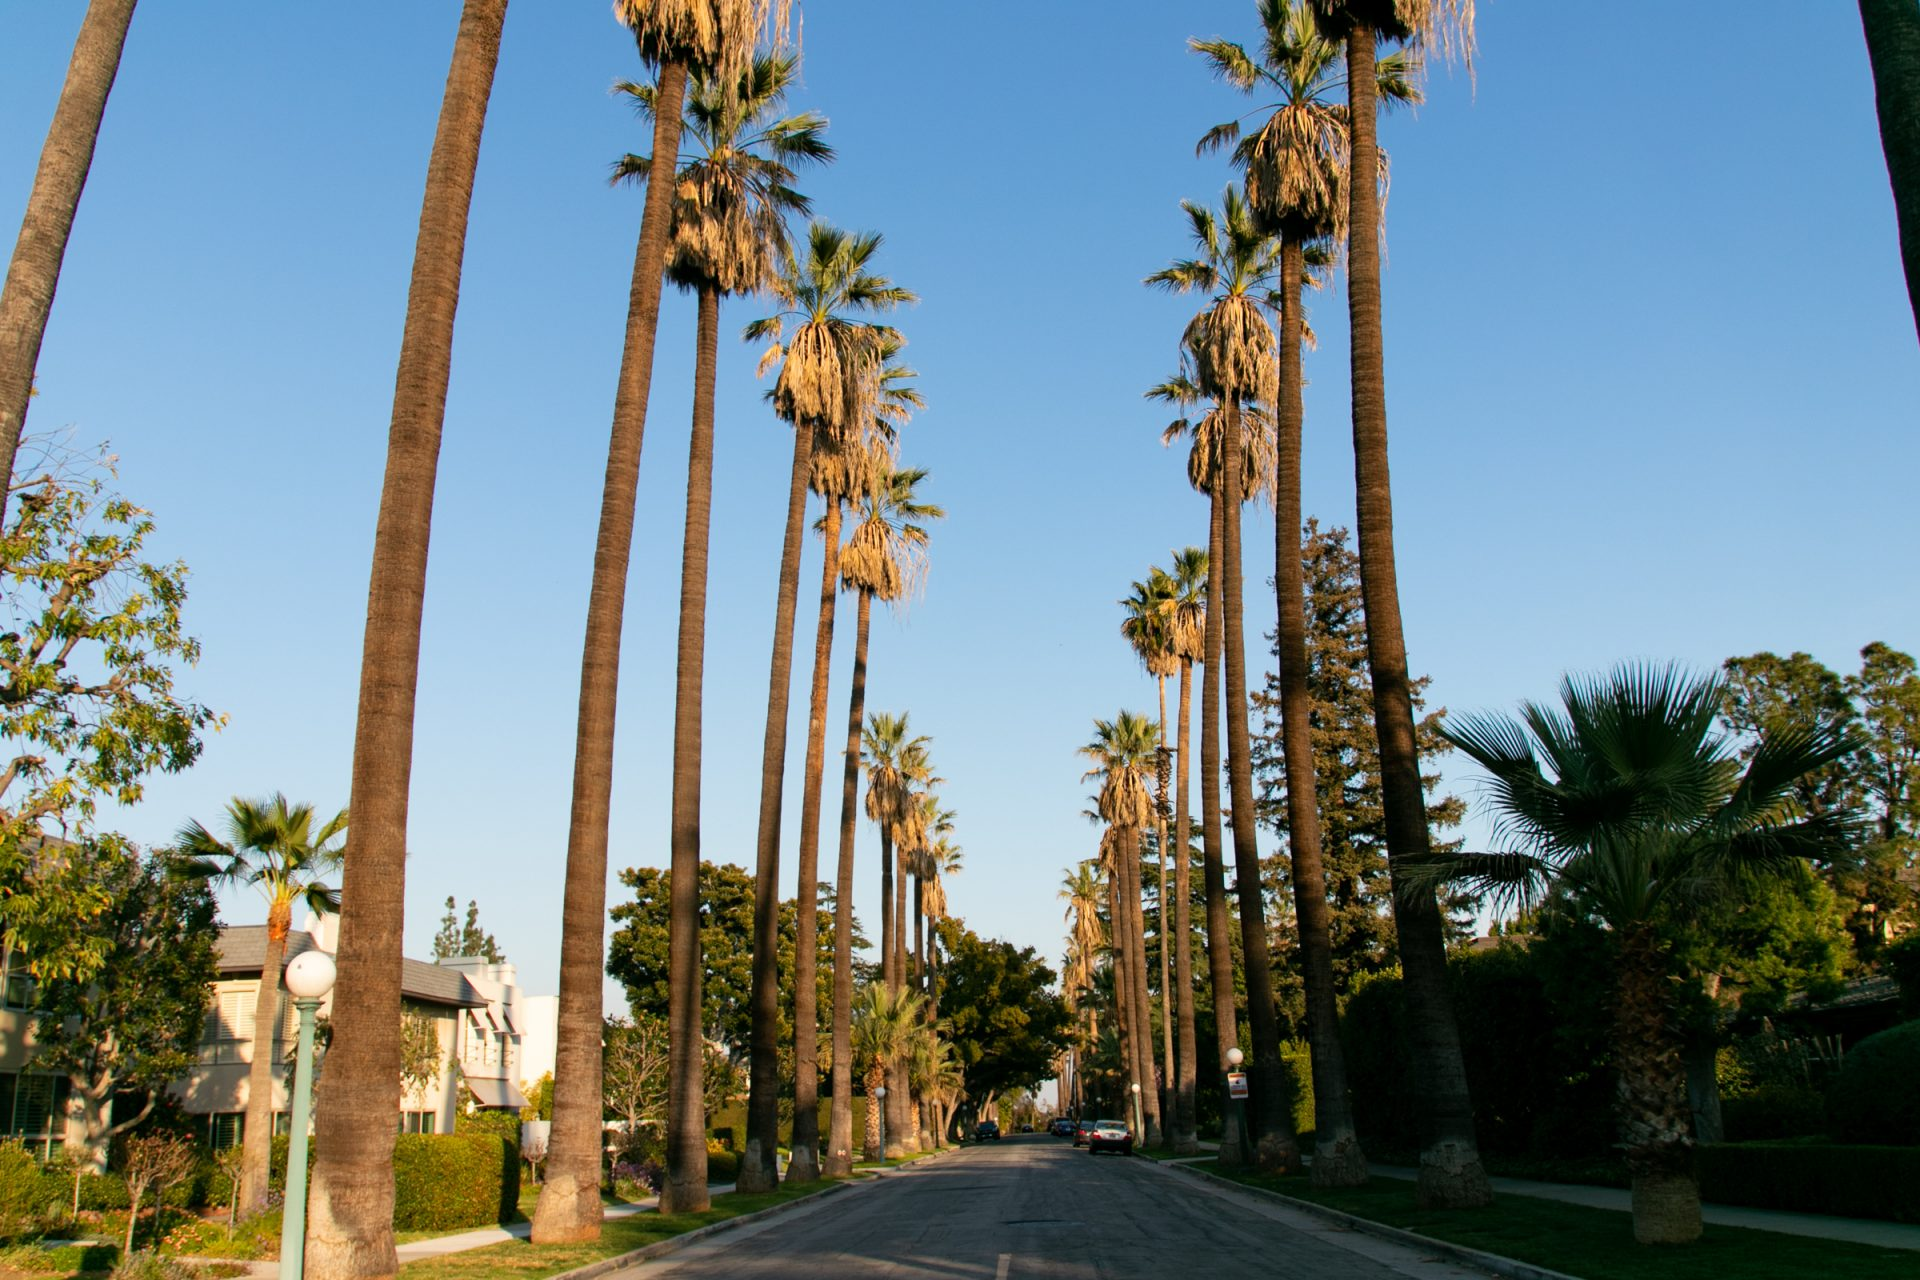 Empty Palm Tree Lined Paved Road